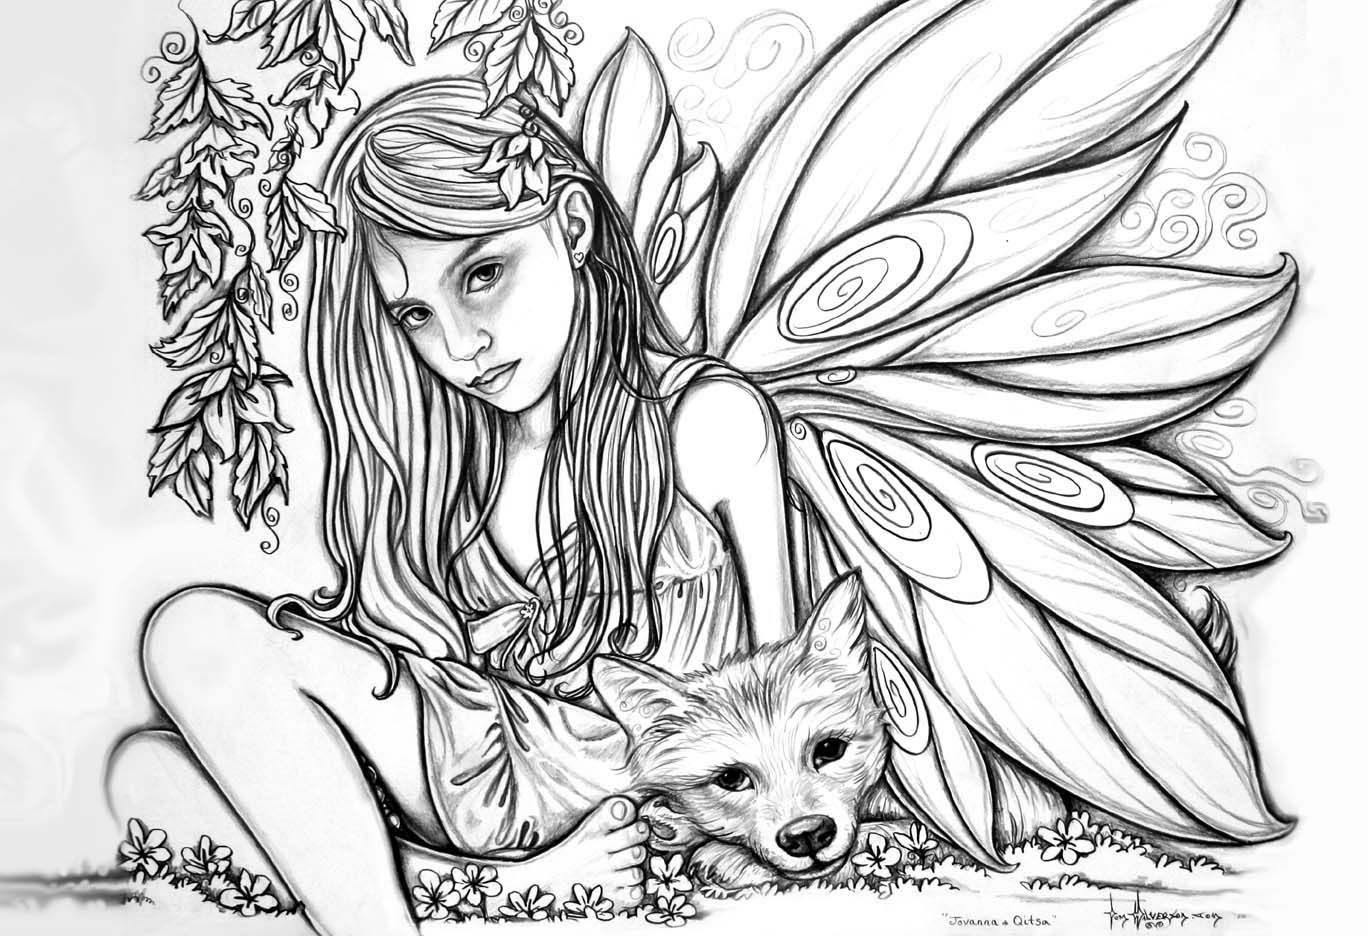 coloring pages hard coloring pages for adults difficult animals 7 coloring coloring pages hard